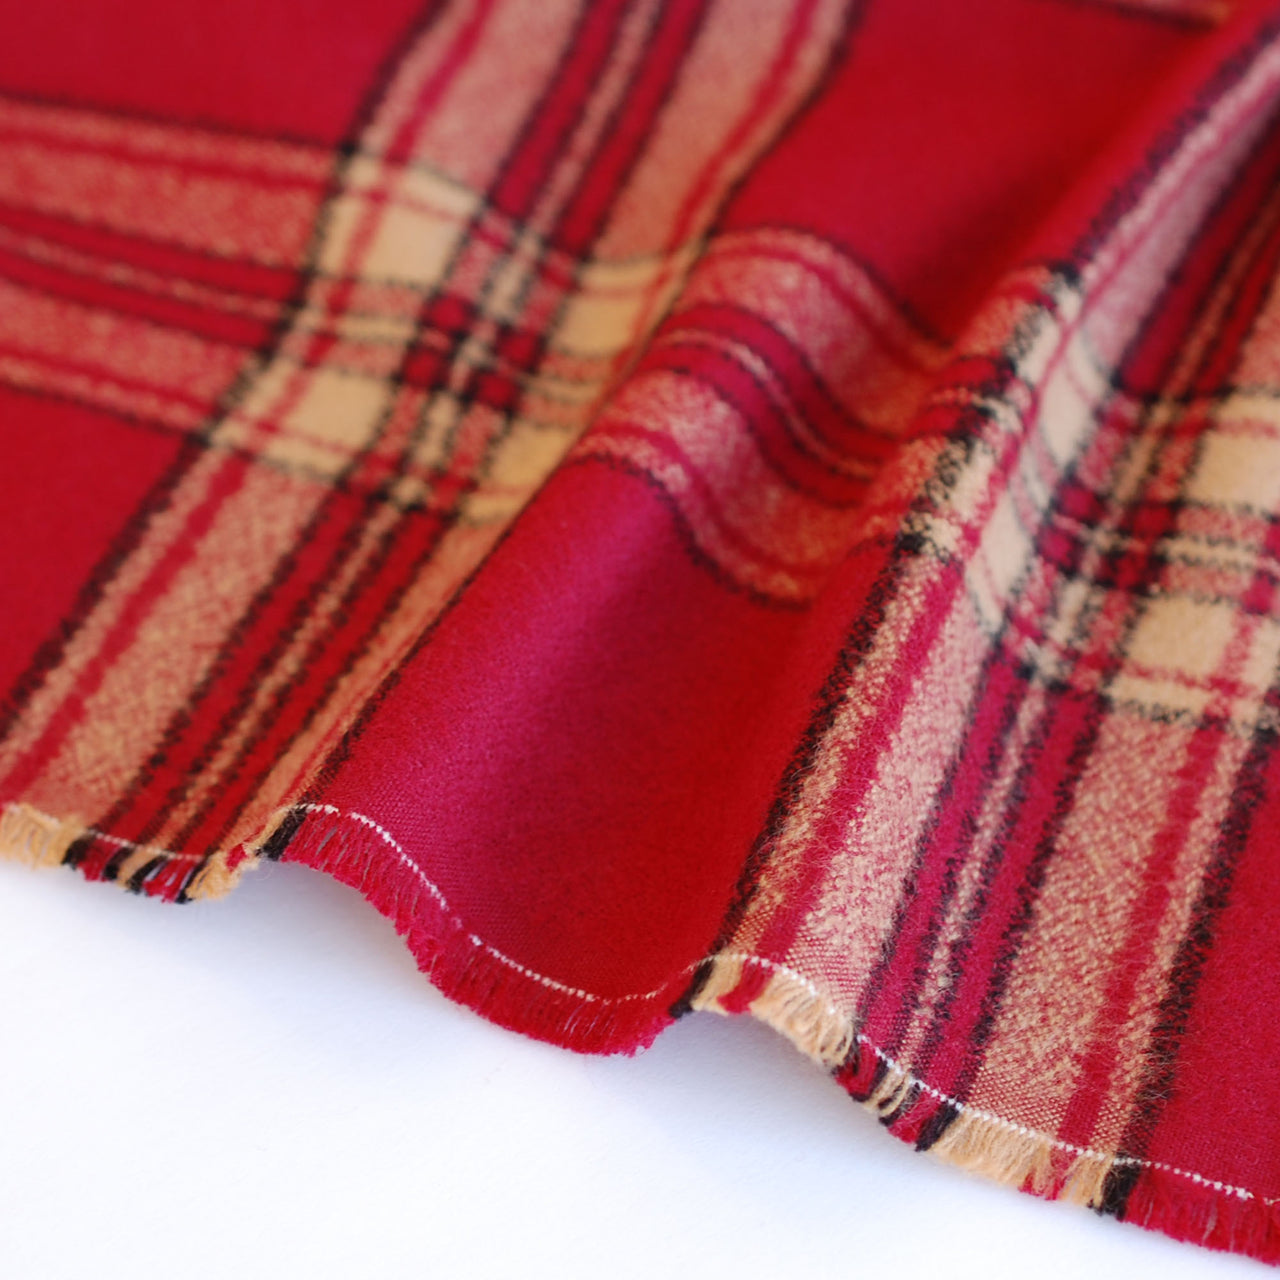 1/2M Mammoth Flannel 18966 in Red